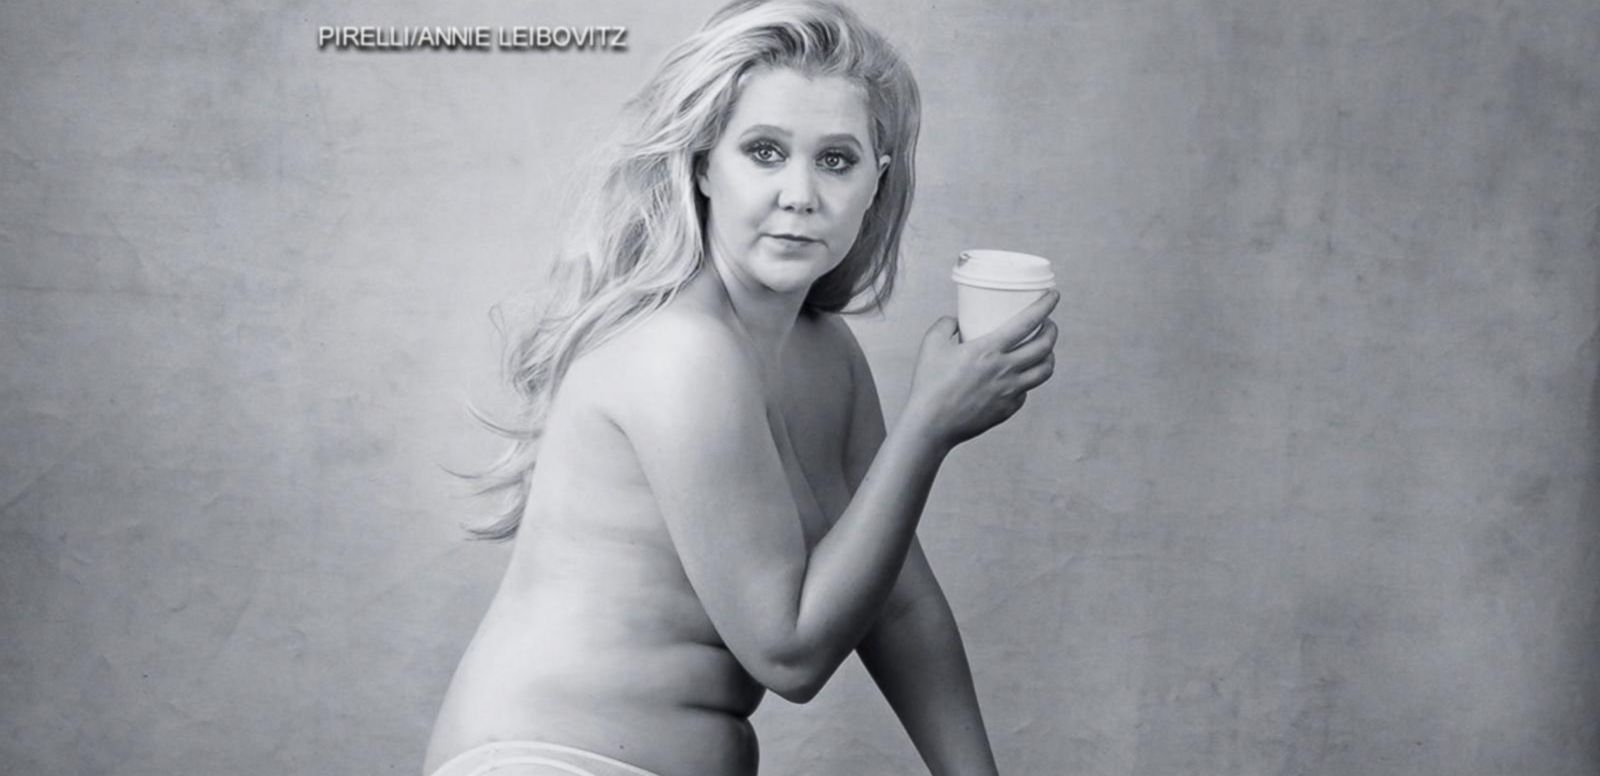 VIDEO: Amy Schumer Goes Semi-Nude for Calendar Shoot